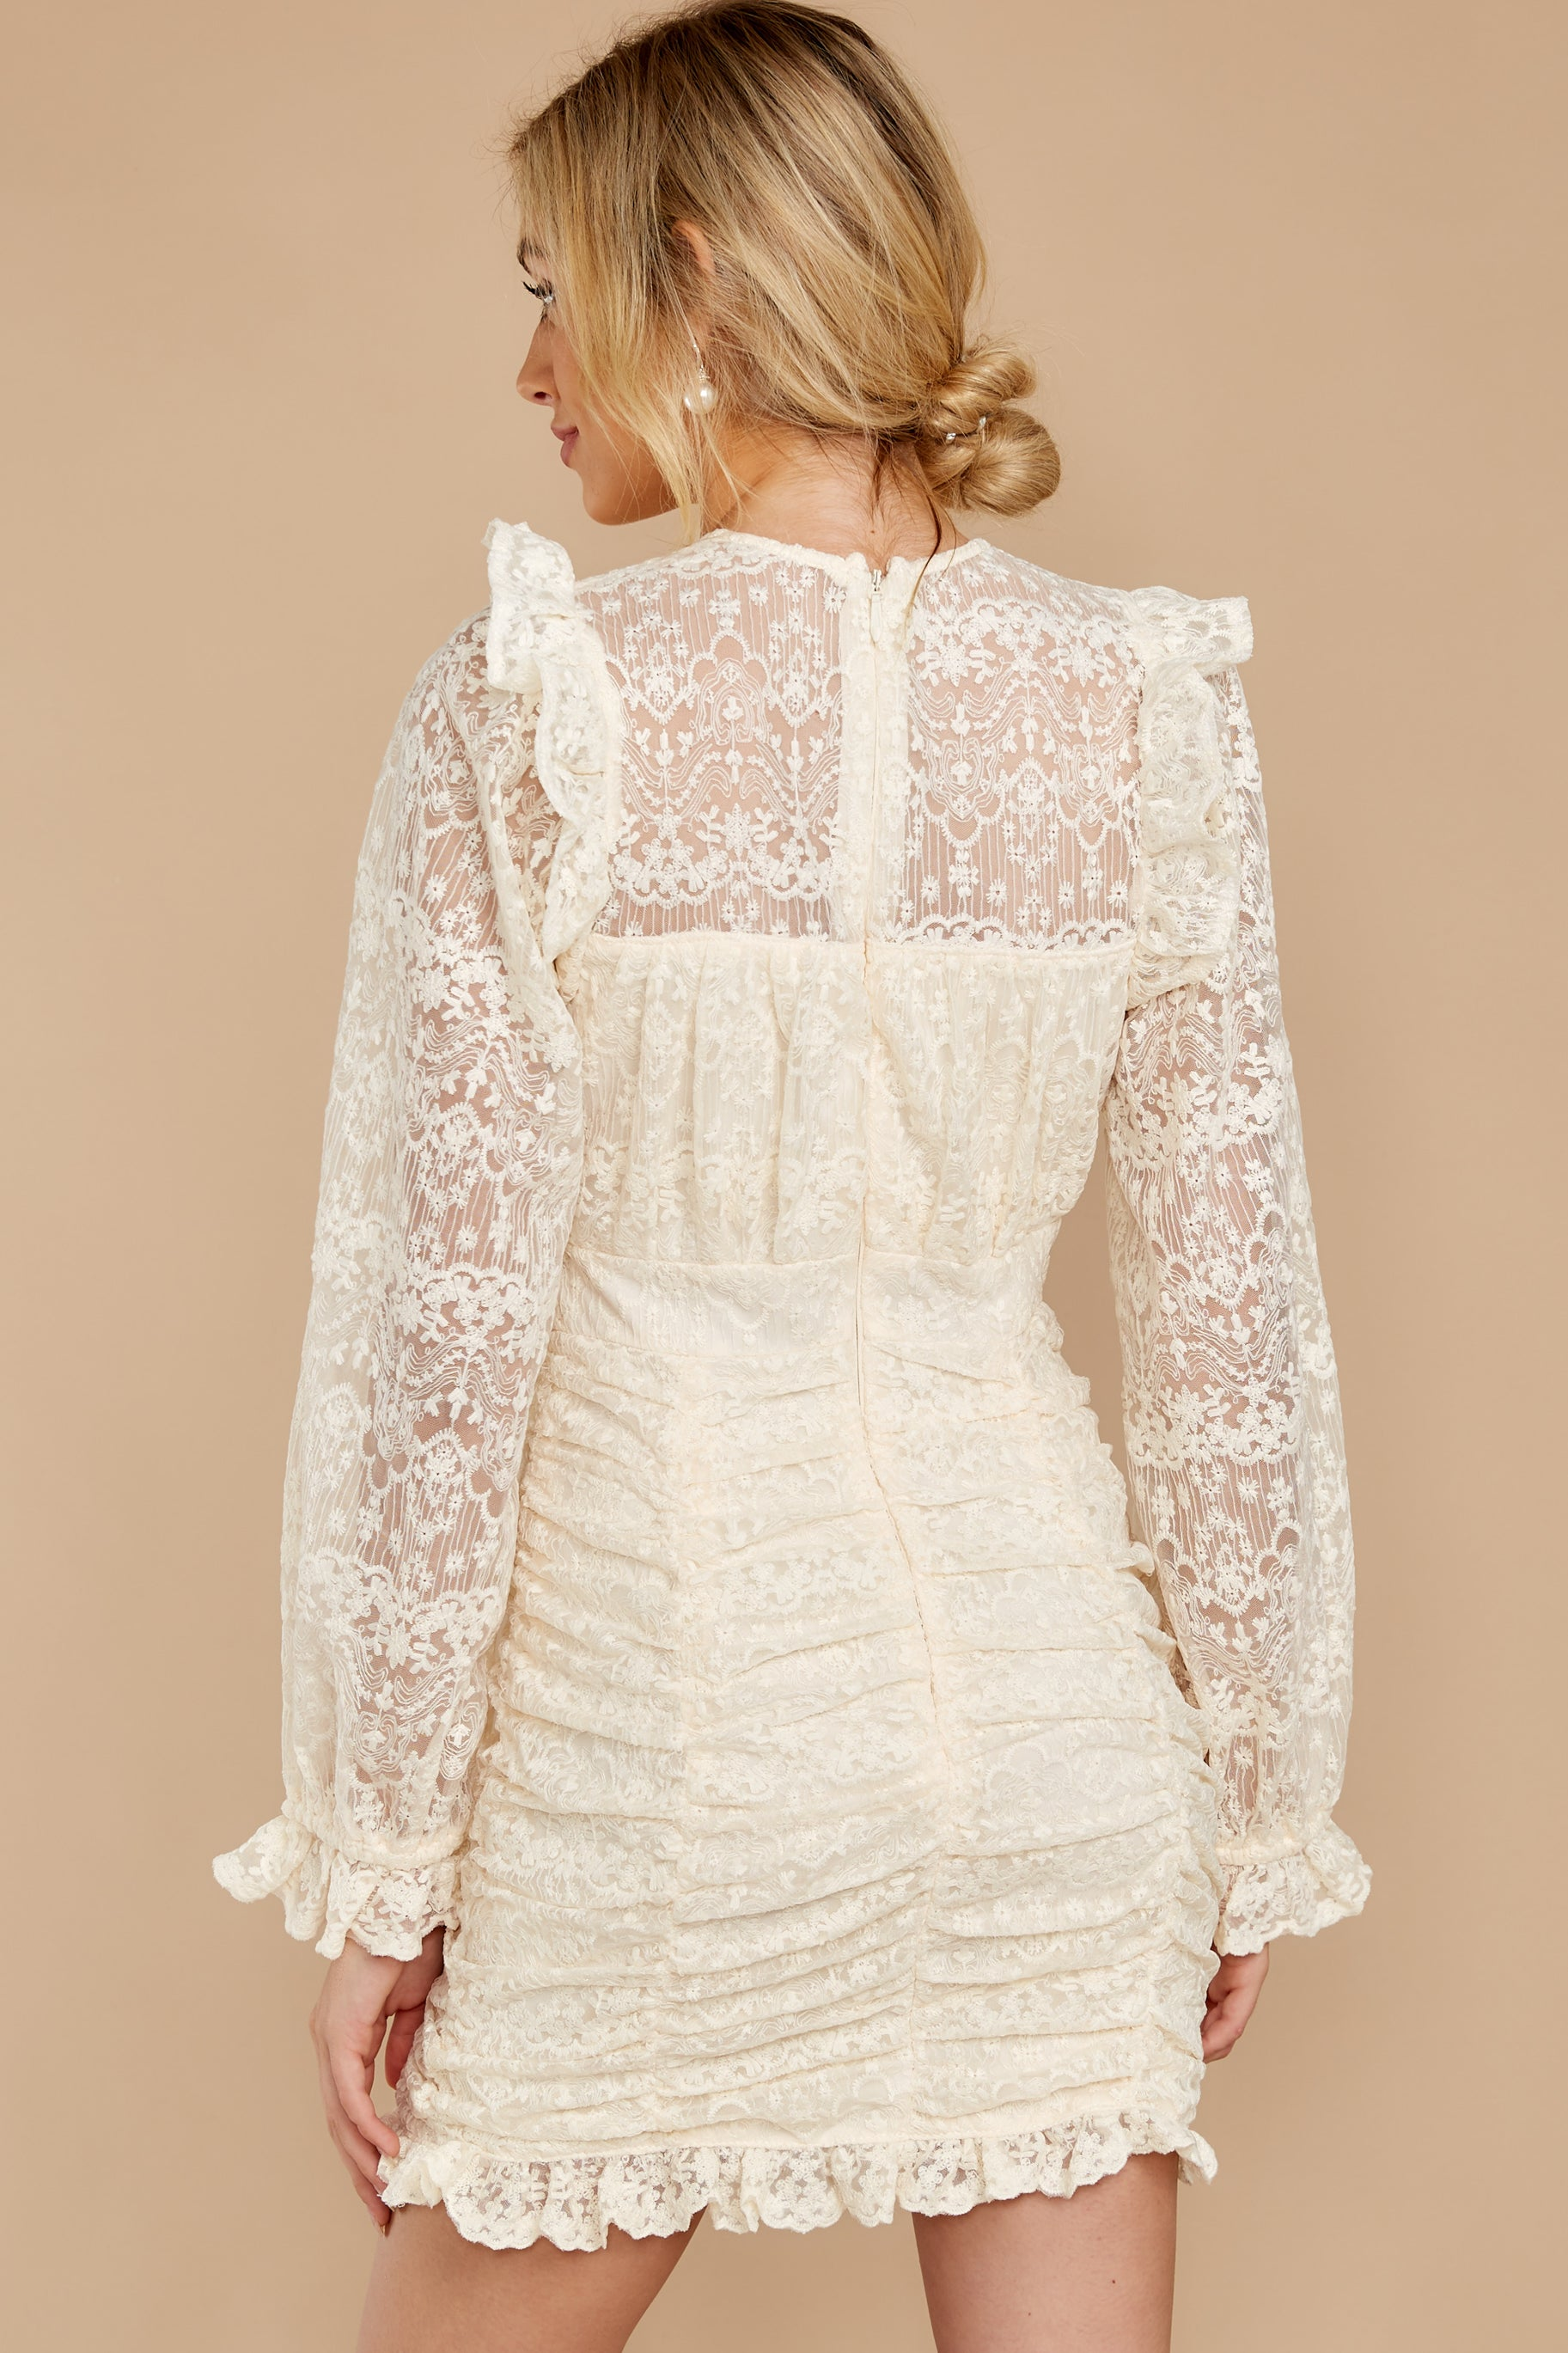 8 Talk About Love Cream Lace Dress at reddress.com